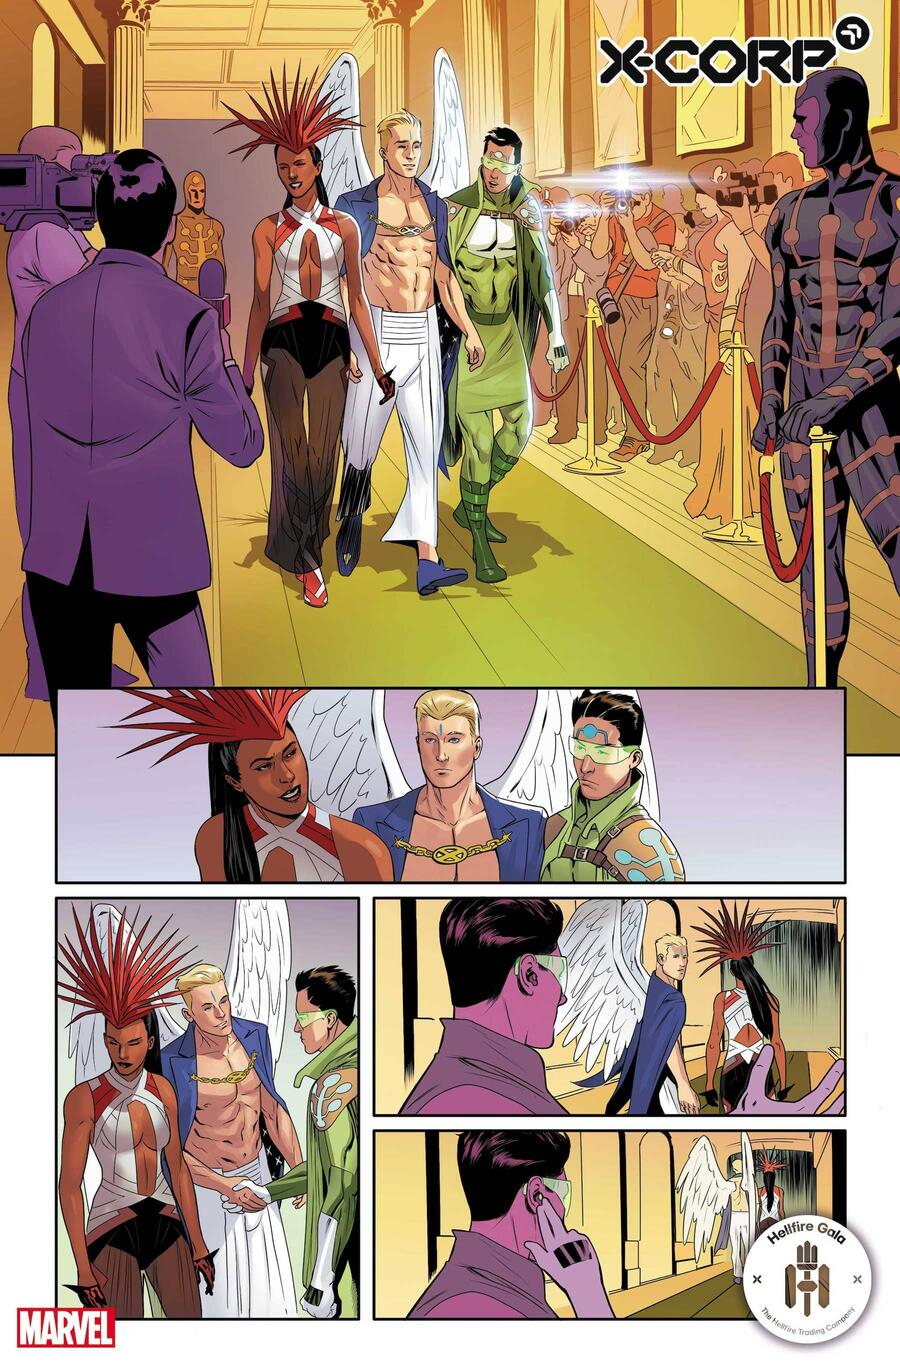 X-CORP #2 preview art by Alberto Foche with colors by Sunny Gho